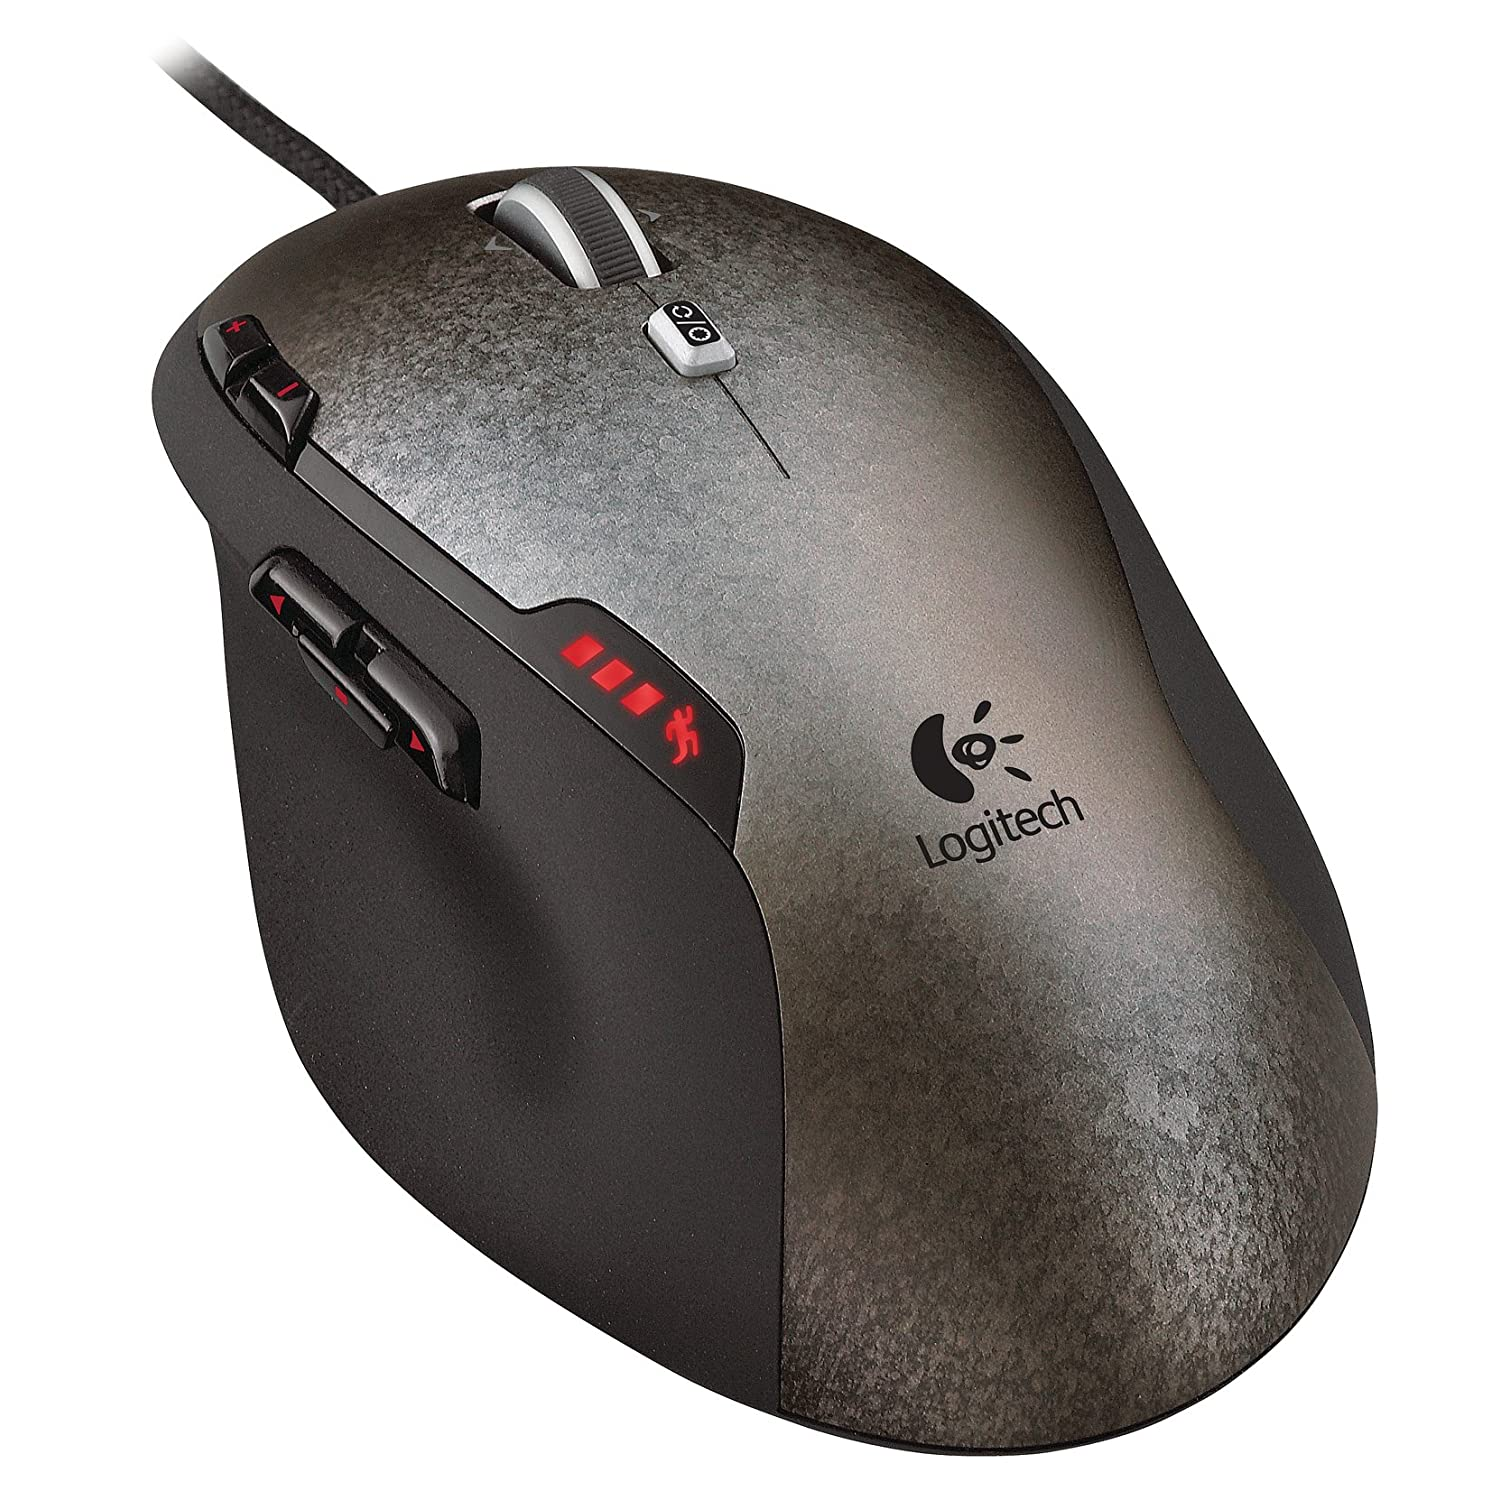 mouse recommendation please macrumors forums